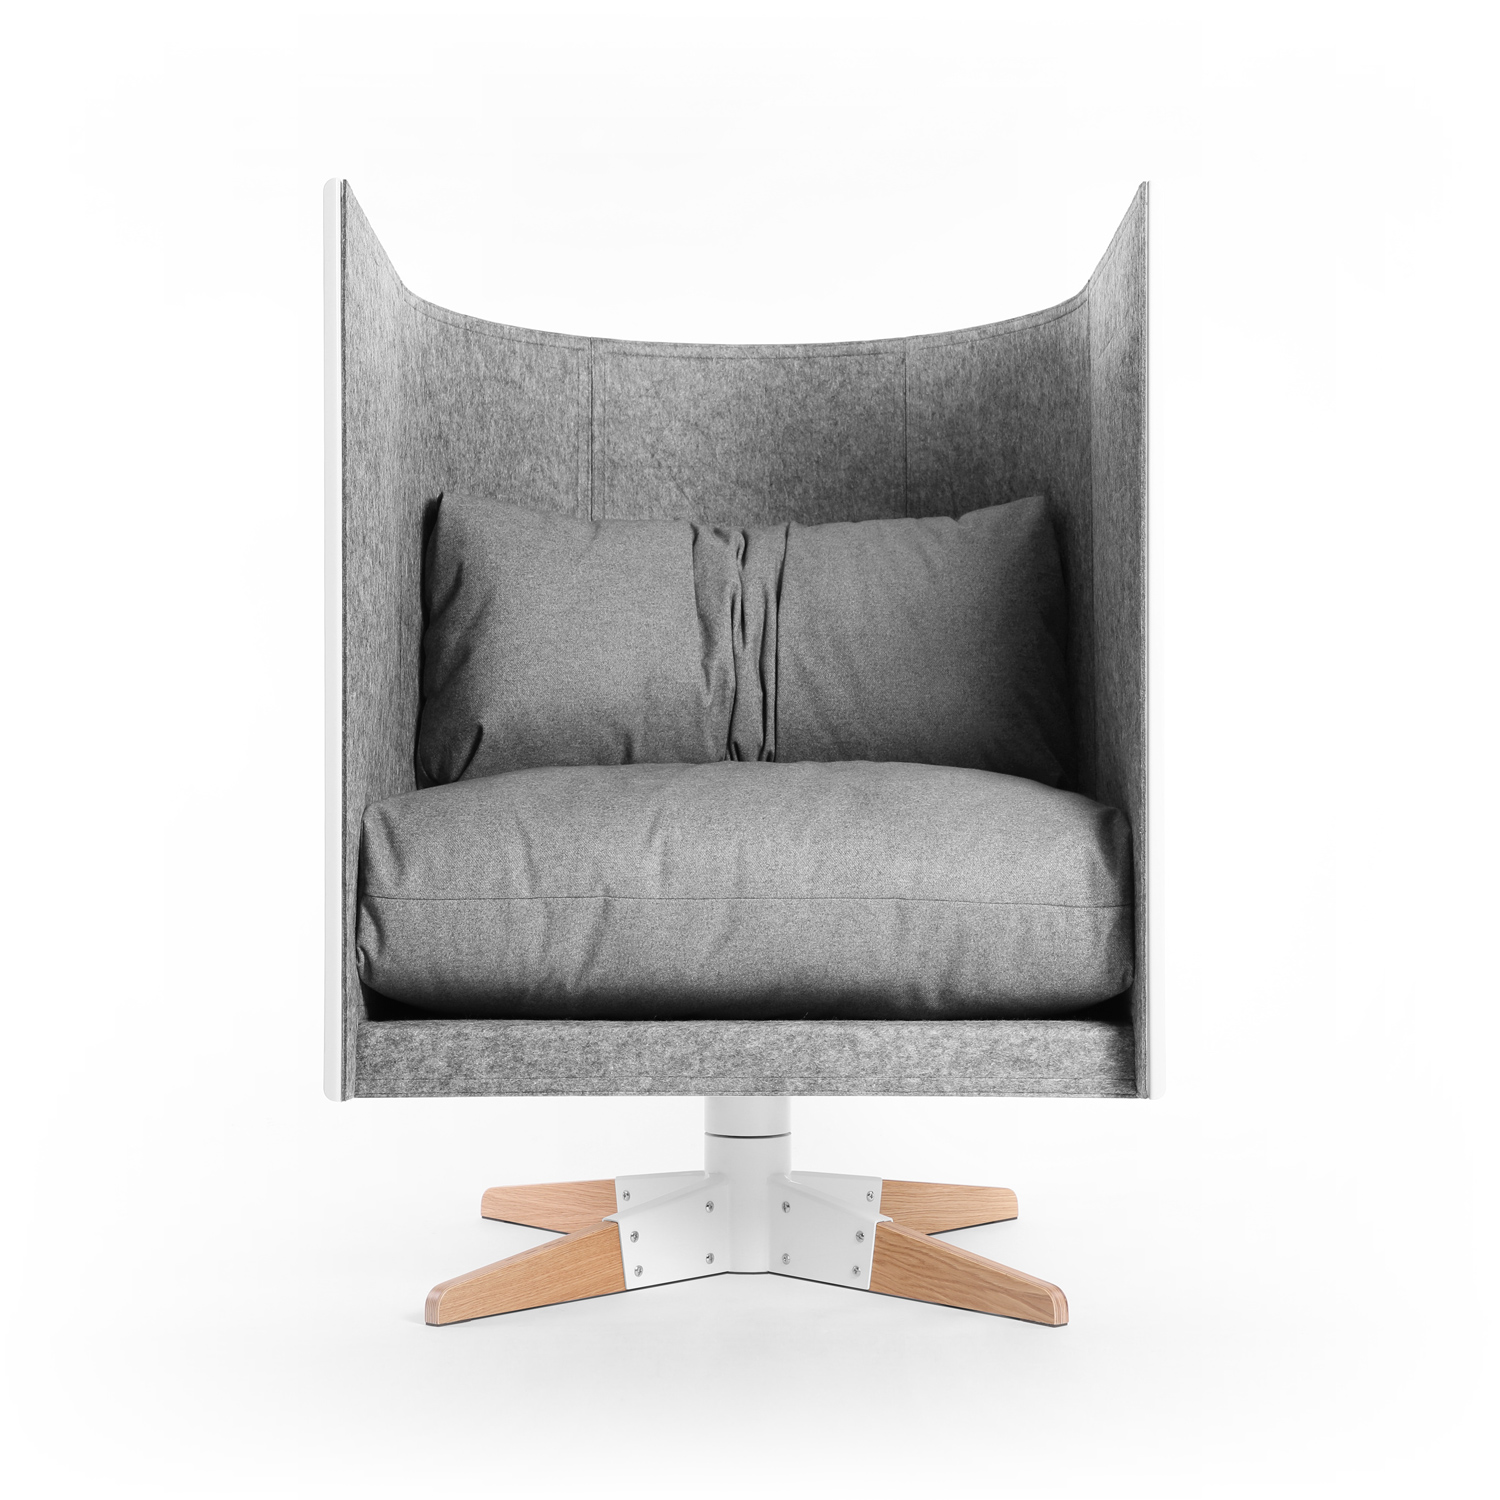 V1 rotate lounge chair